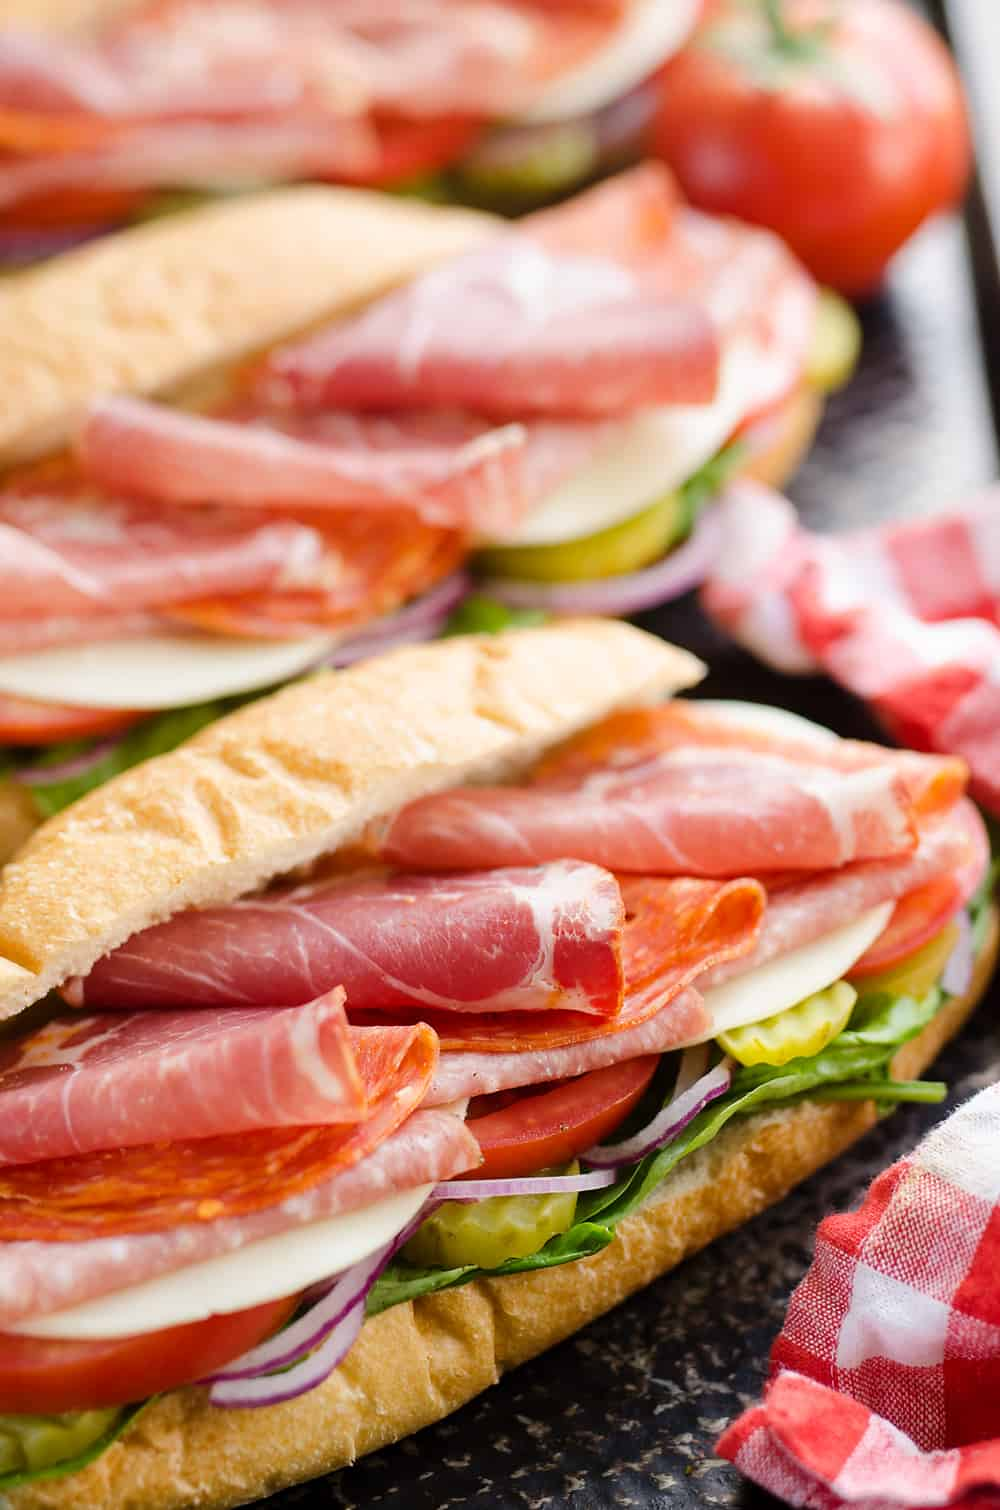 Italian Hero Sub Sandwich serving